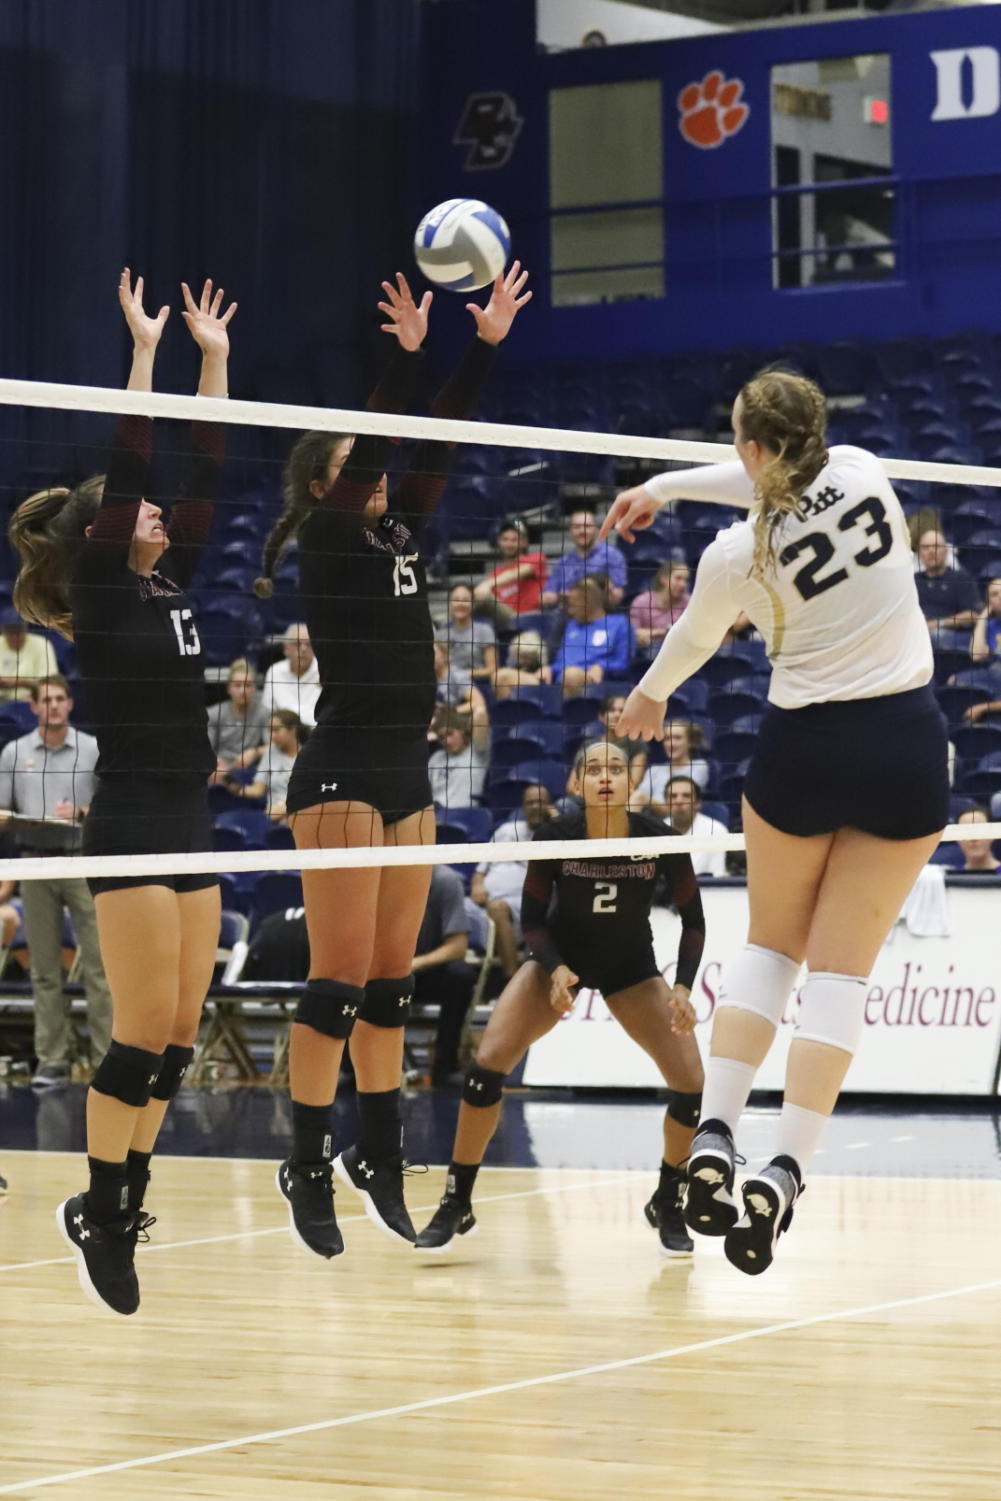 Sophomore Kayla Lund had 23 kills in the team's victory over College of Charleston Sept. 14.